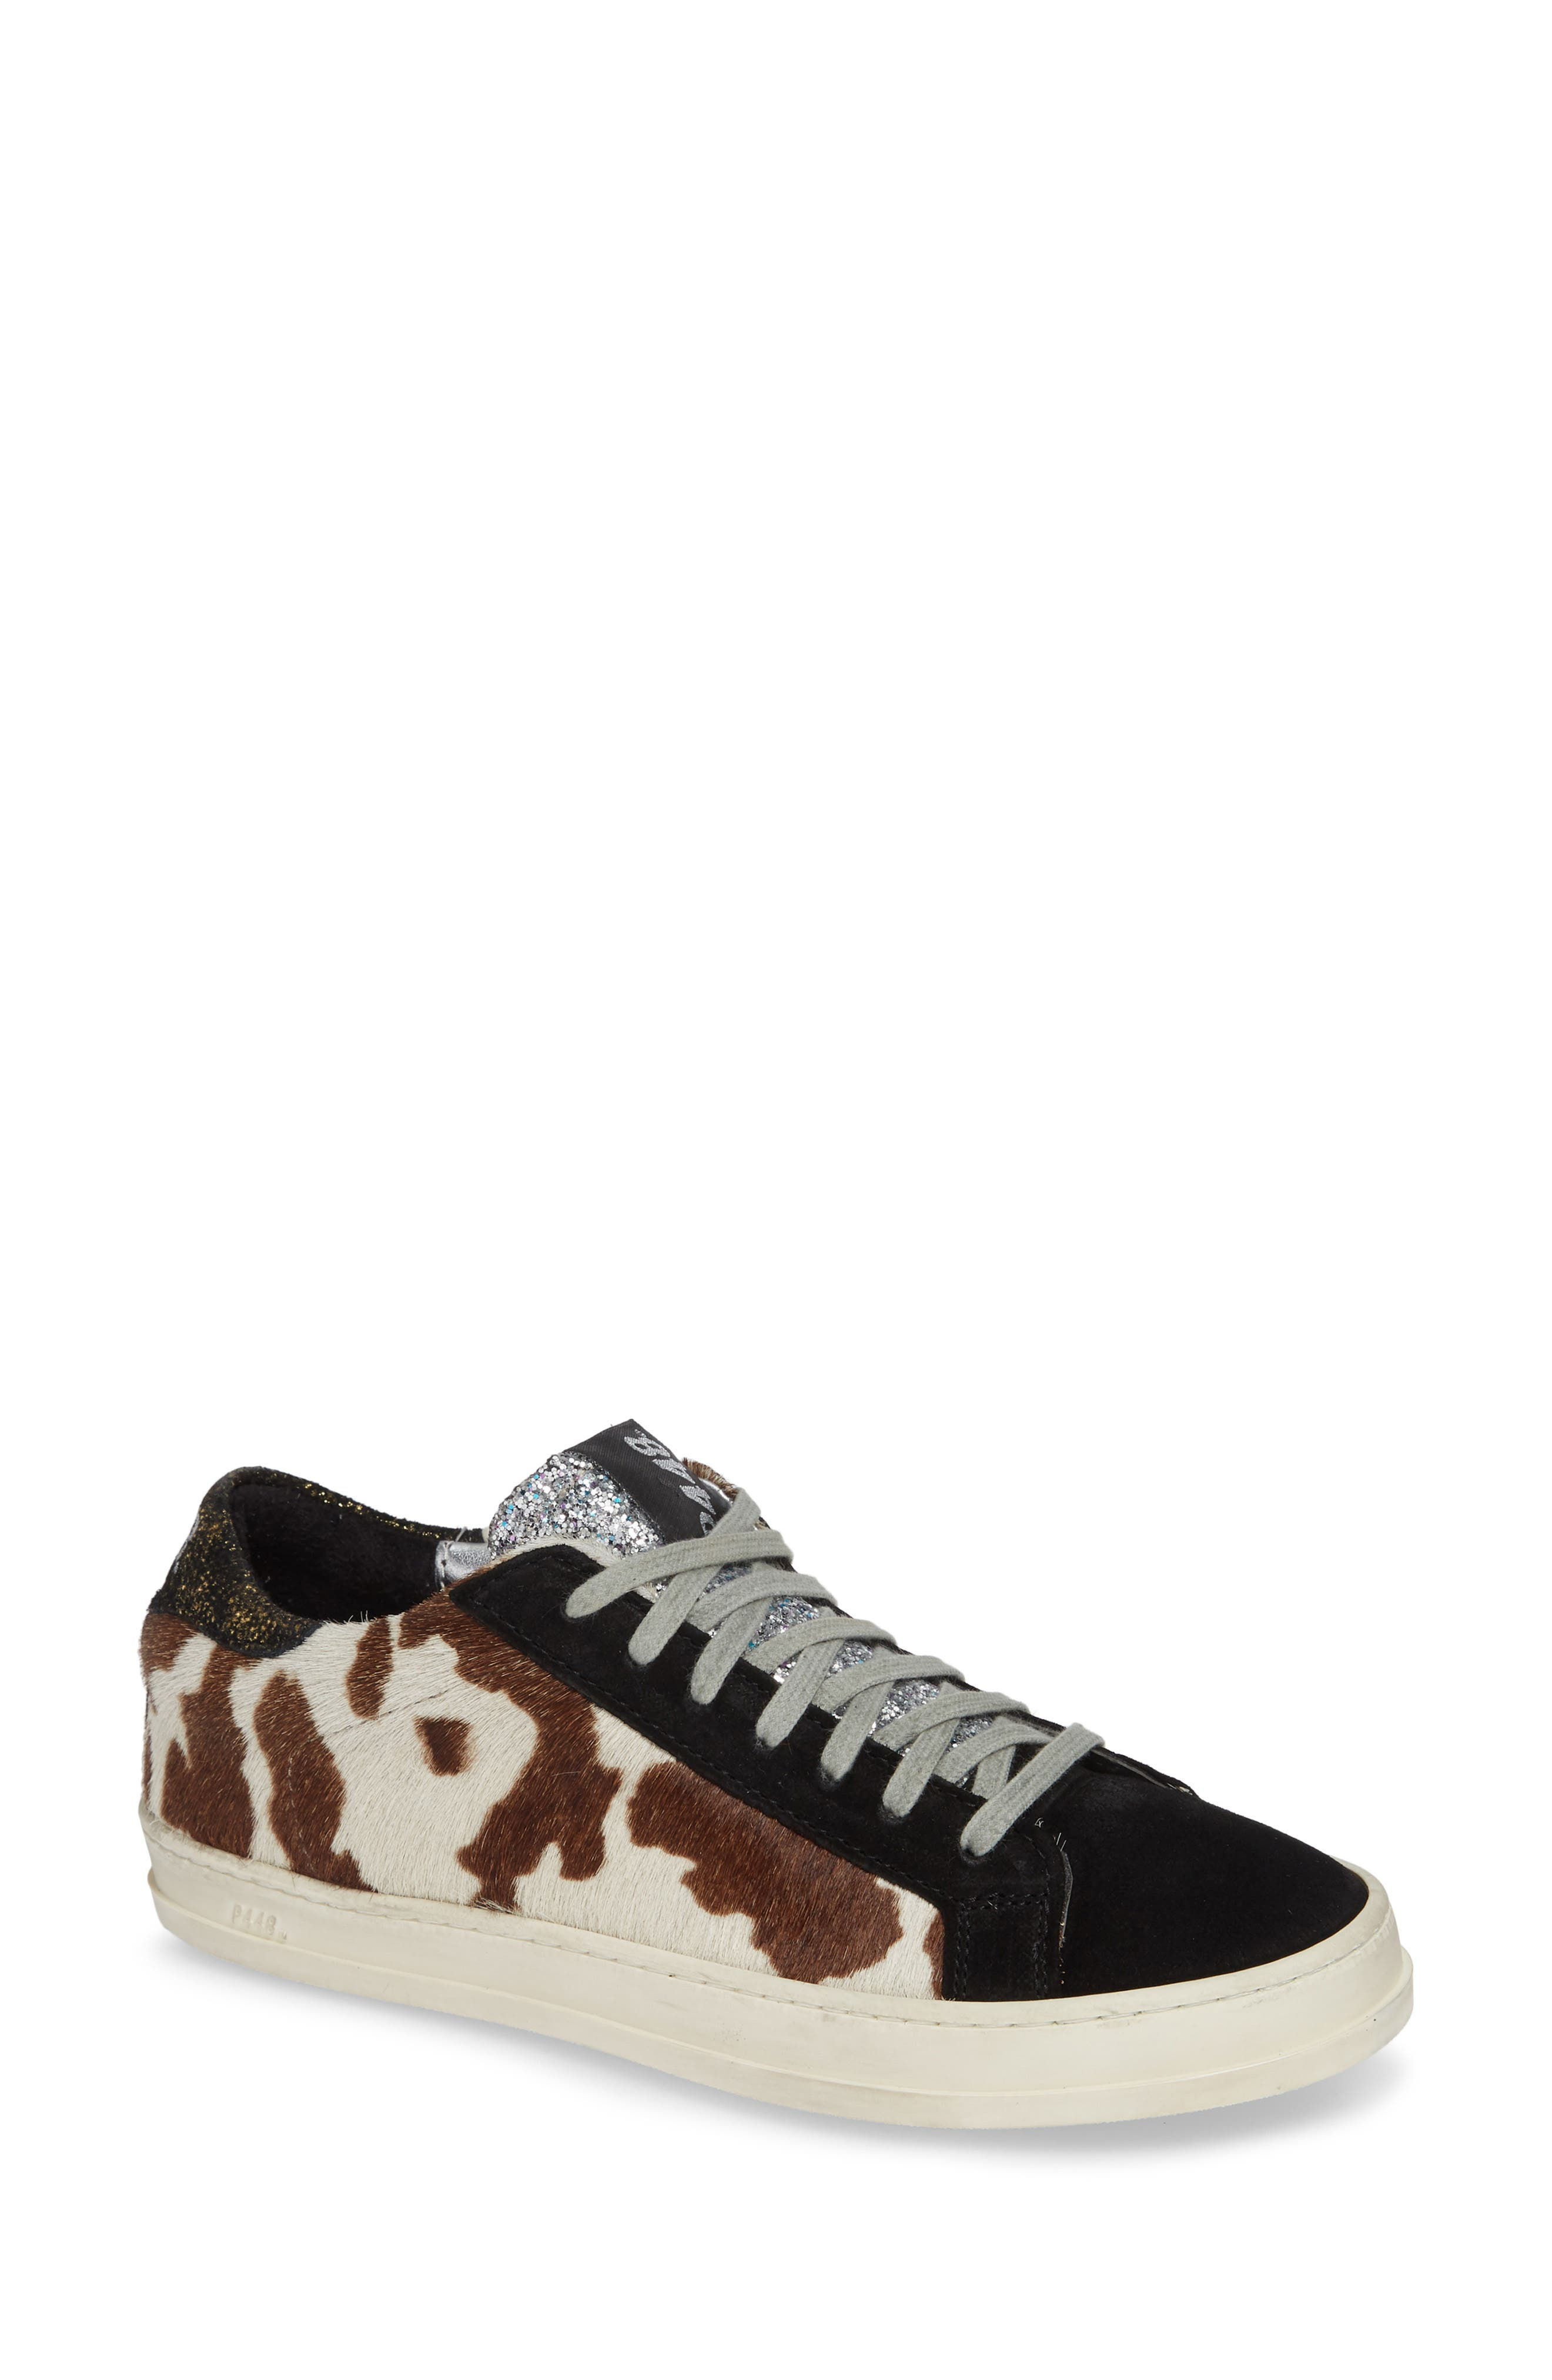 P448 Women'S John Fur & Leather Lace-Up Sneakers in Brown Calf Hair